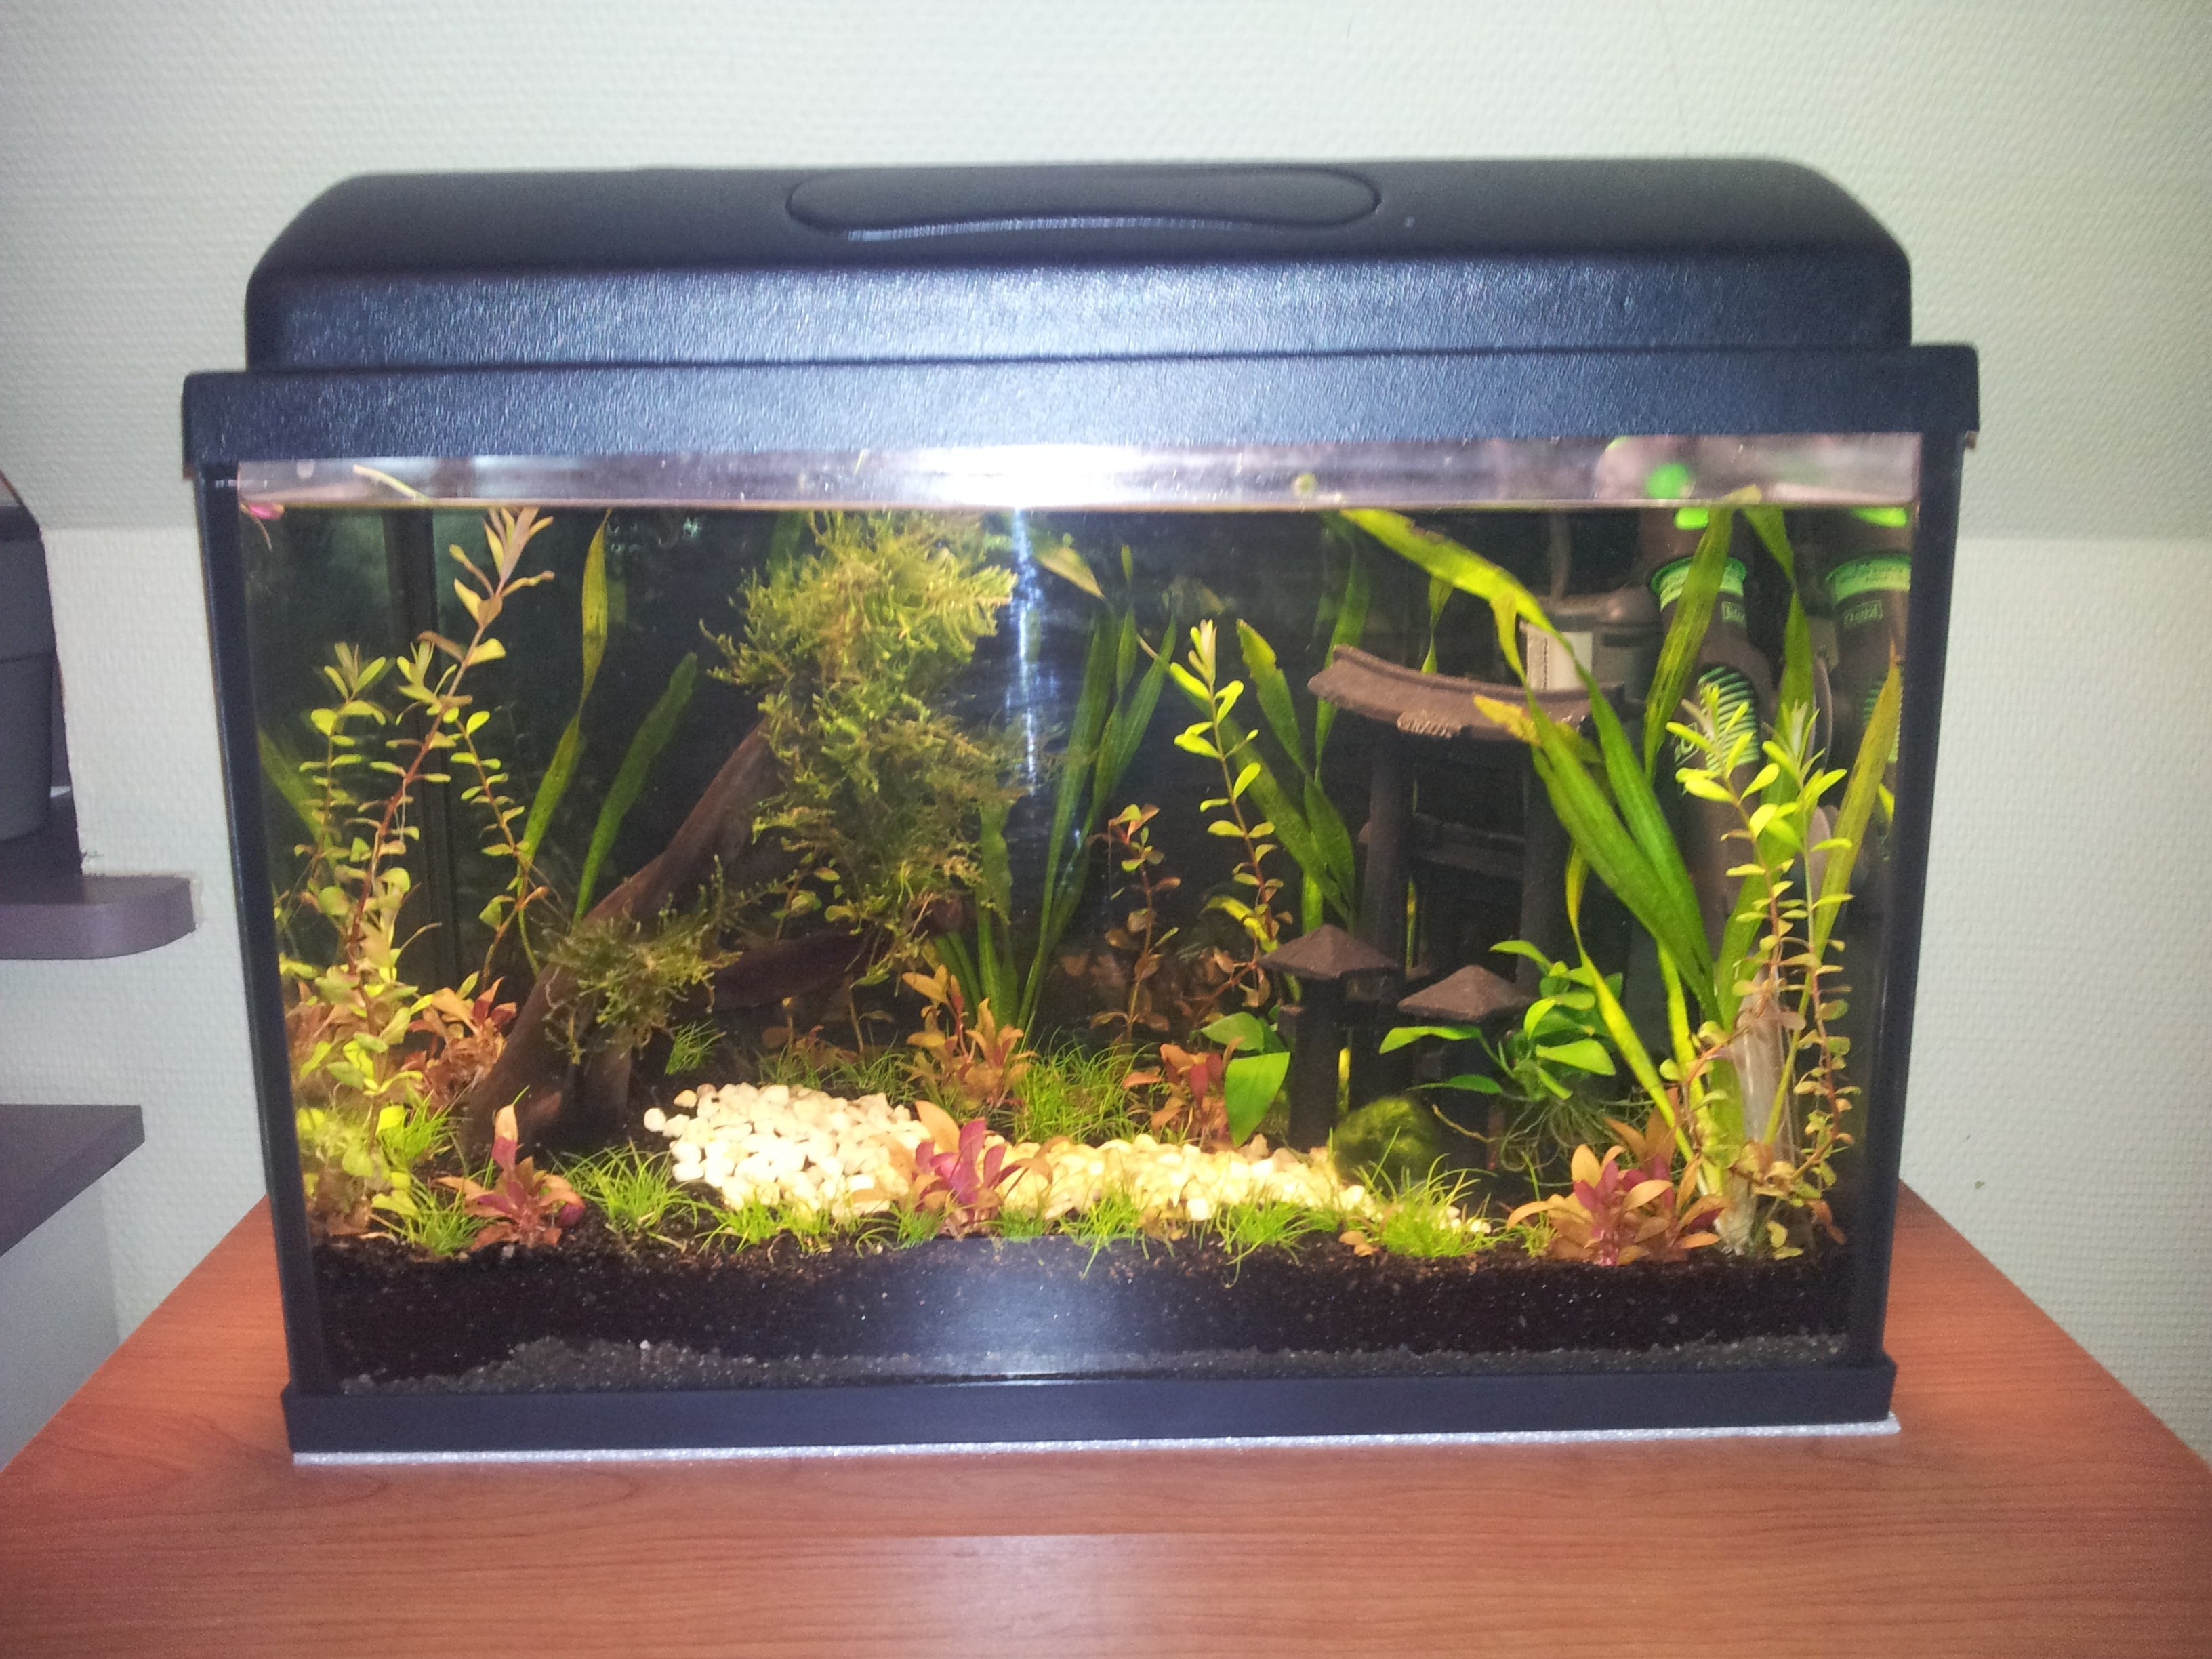 Aquarium de 20 litres betta splendens for Quand changer eau aquarium poisson rouge